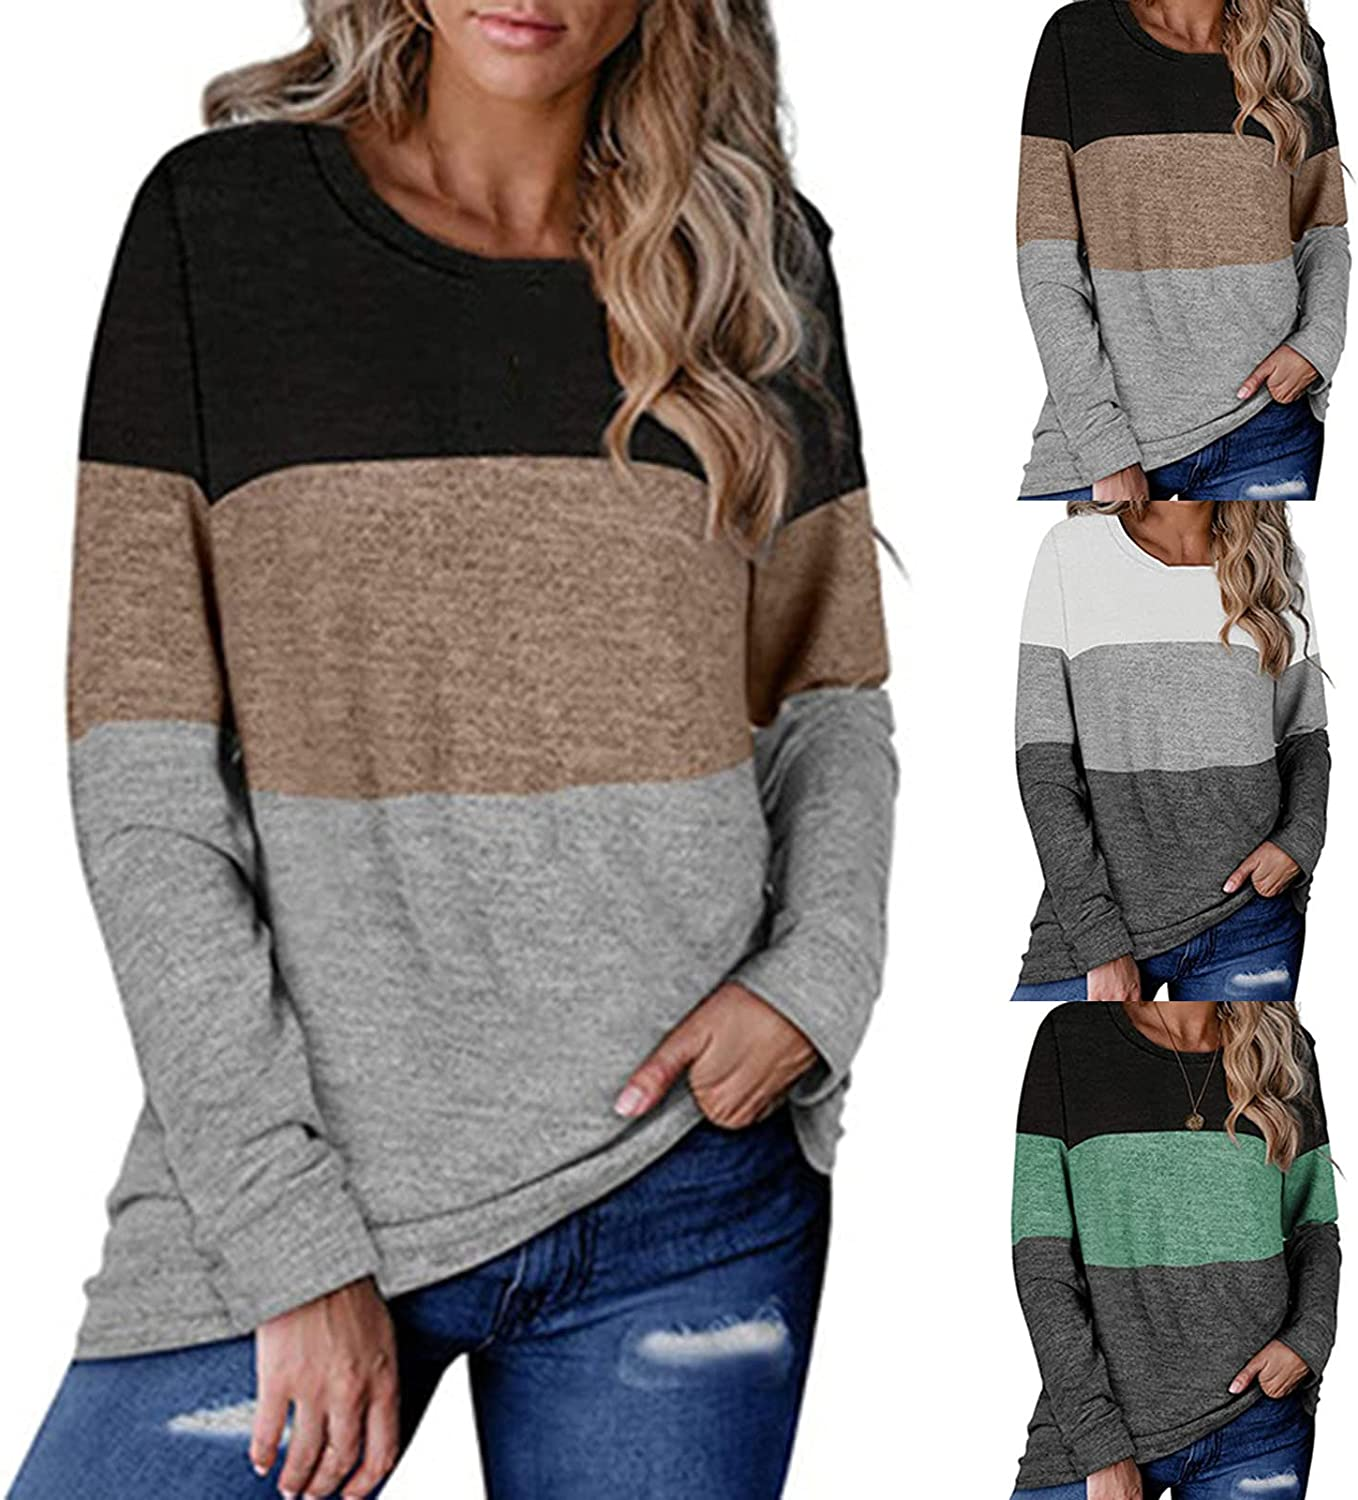 Womens Tops Casual Patchwork Blouse Long Sleeve T Shirt Color Block Graphic Print Sweatshirt Round Neck Pullover Tunic